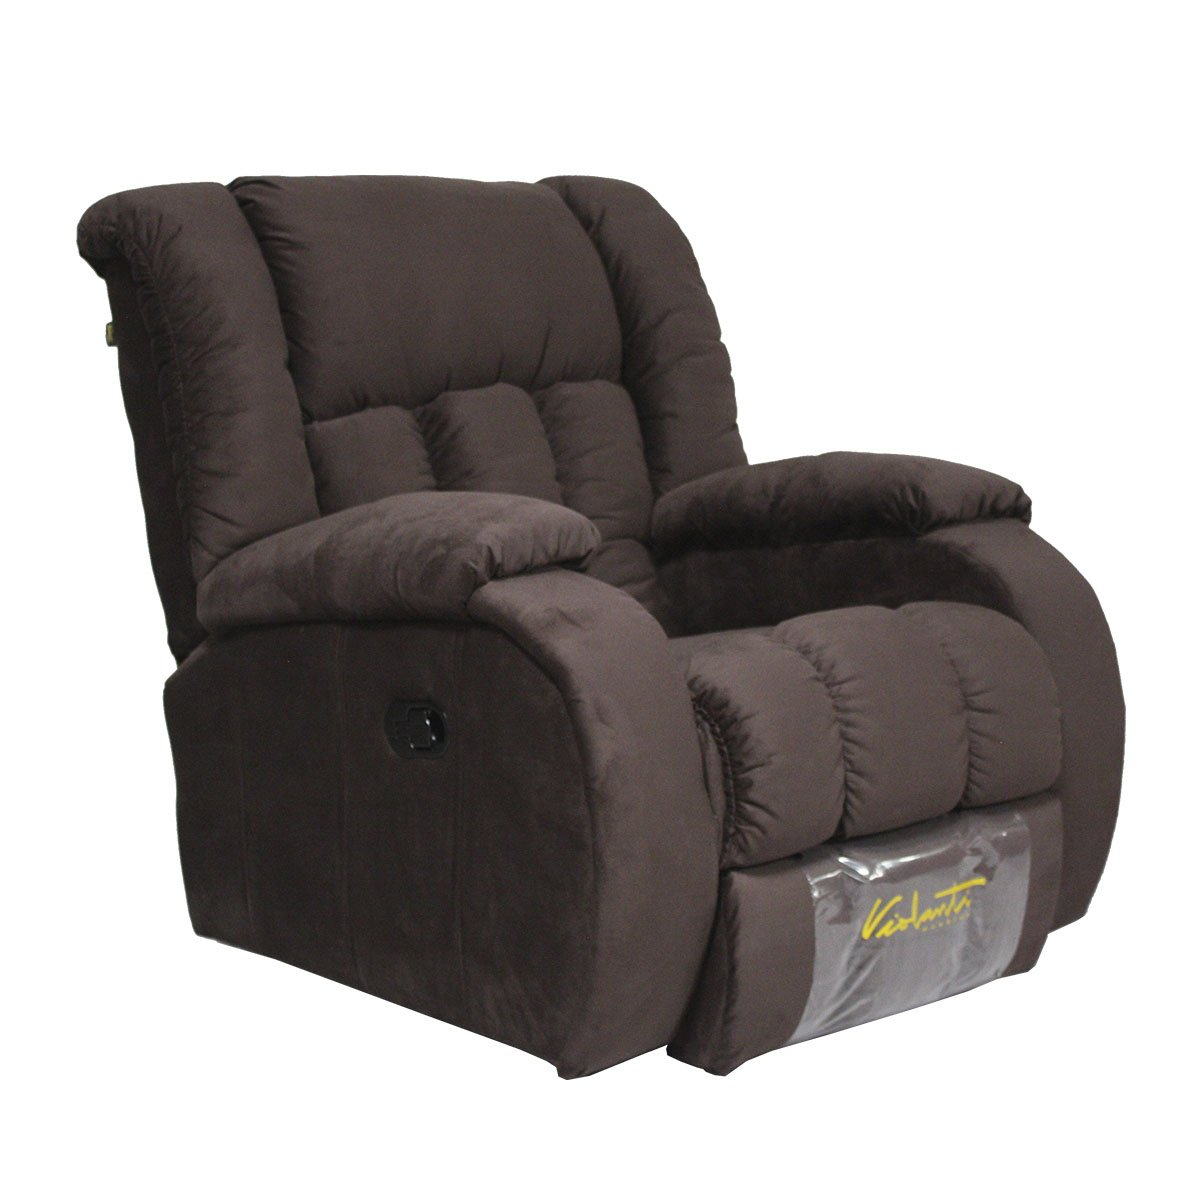 Reclinable Ander